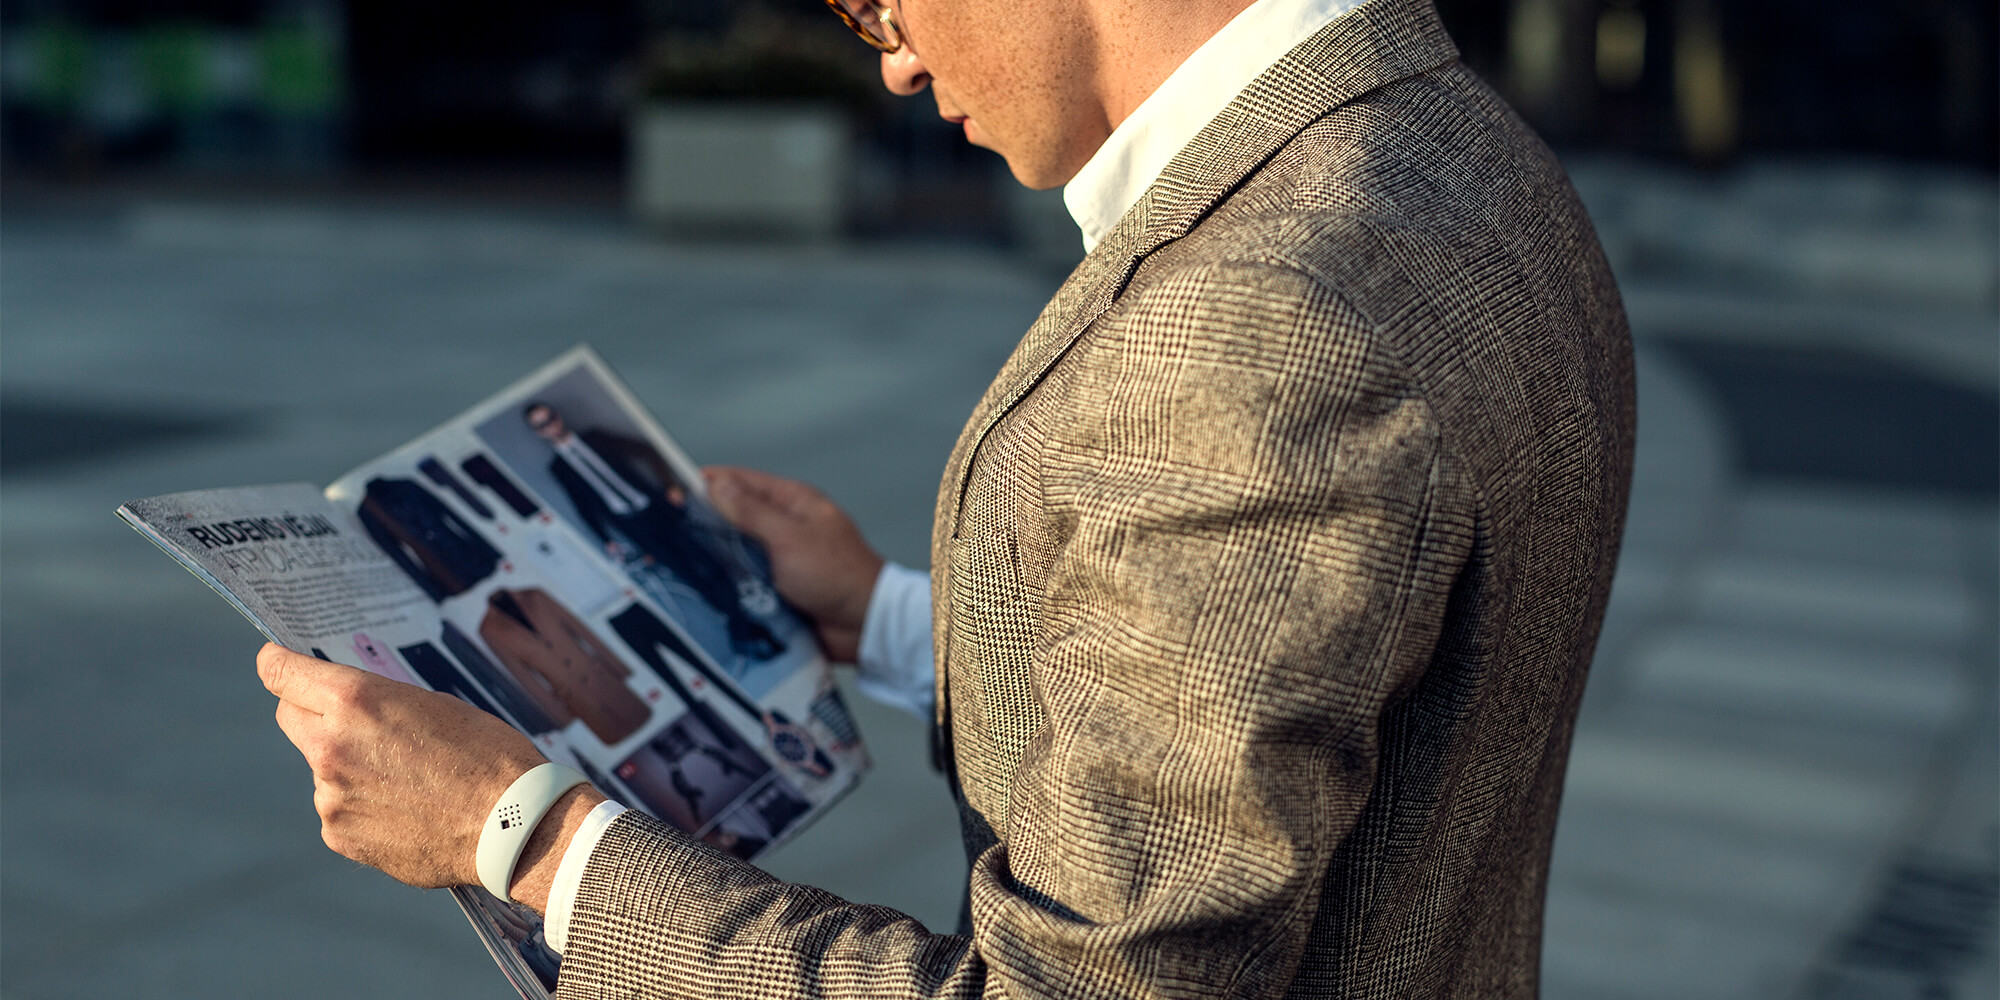 Businessman wears the luxurious AMBRIO bracelet while reading fashion magazine